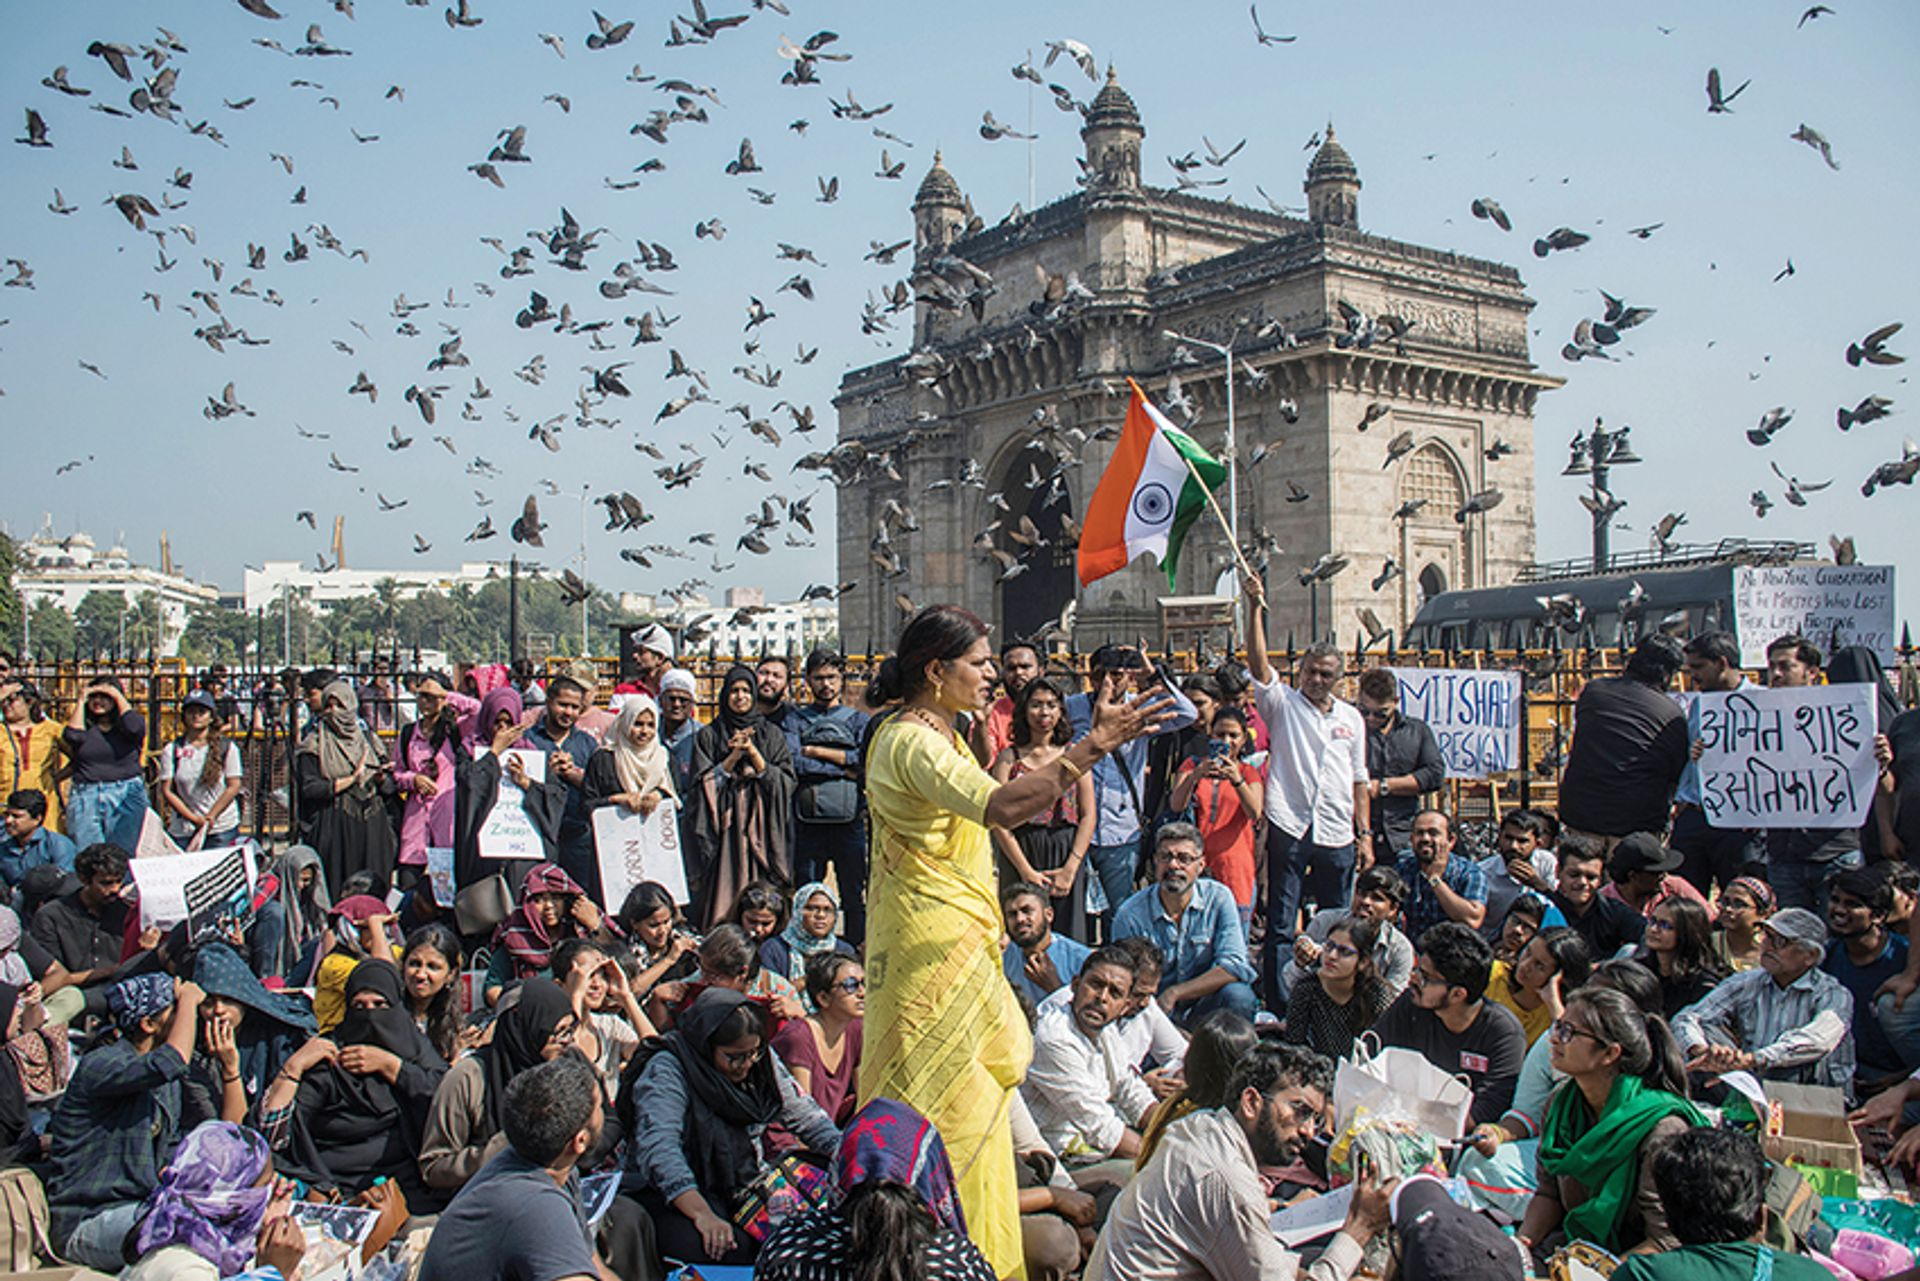 Protesters against the recent attacks on JNU students and teachers gather at the Gateway of India in Mumbai Pratik Chorge/Hindustan Times via Getty Images